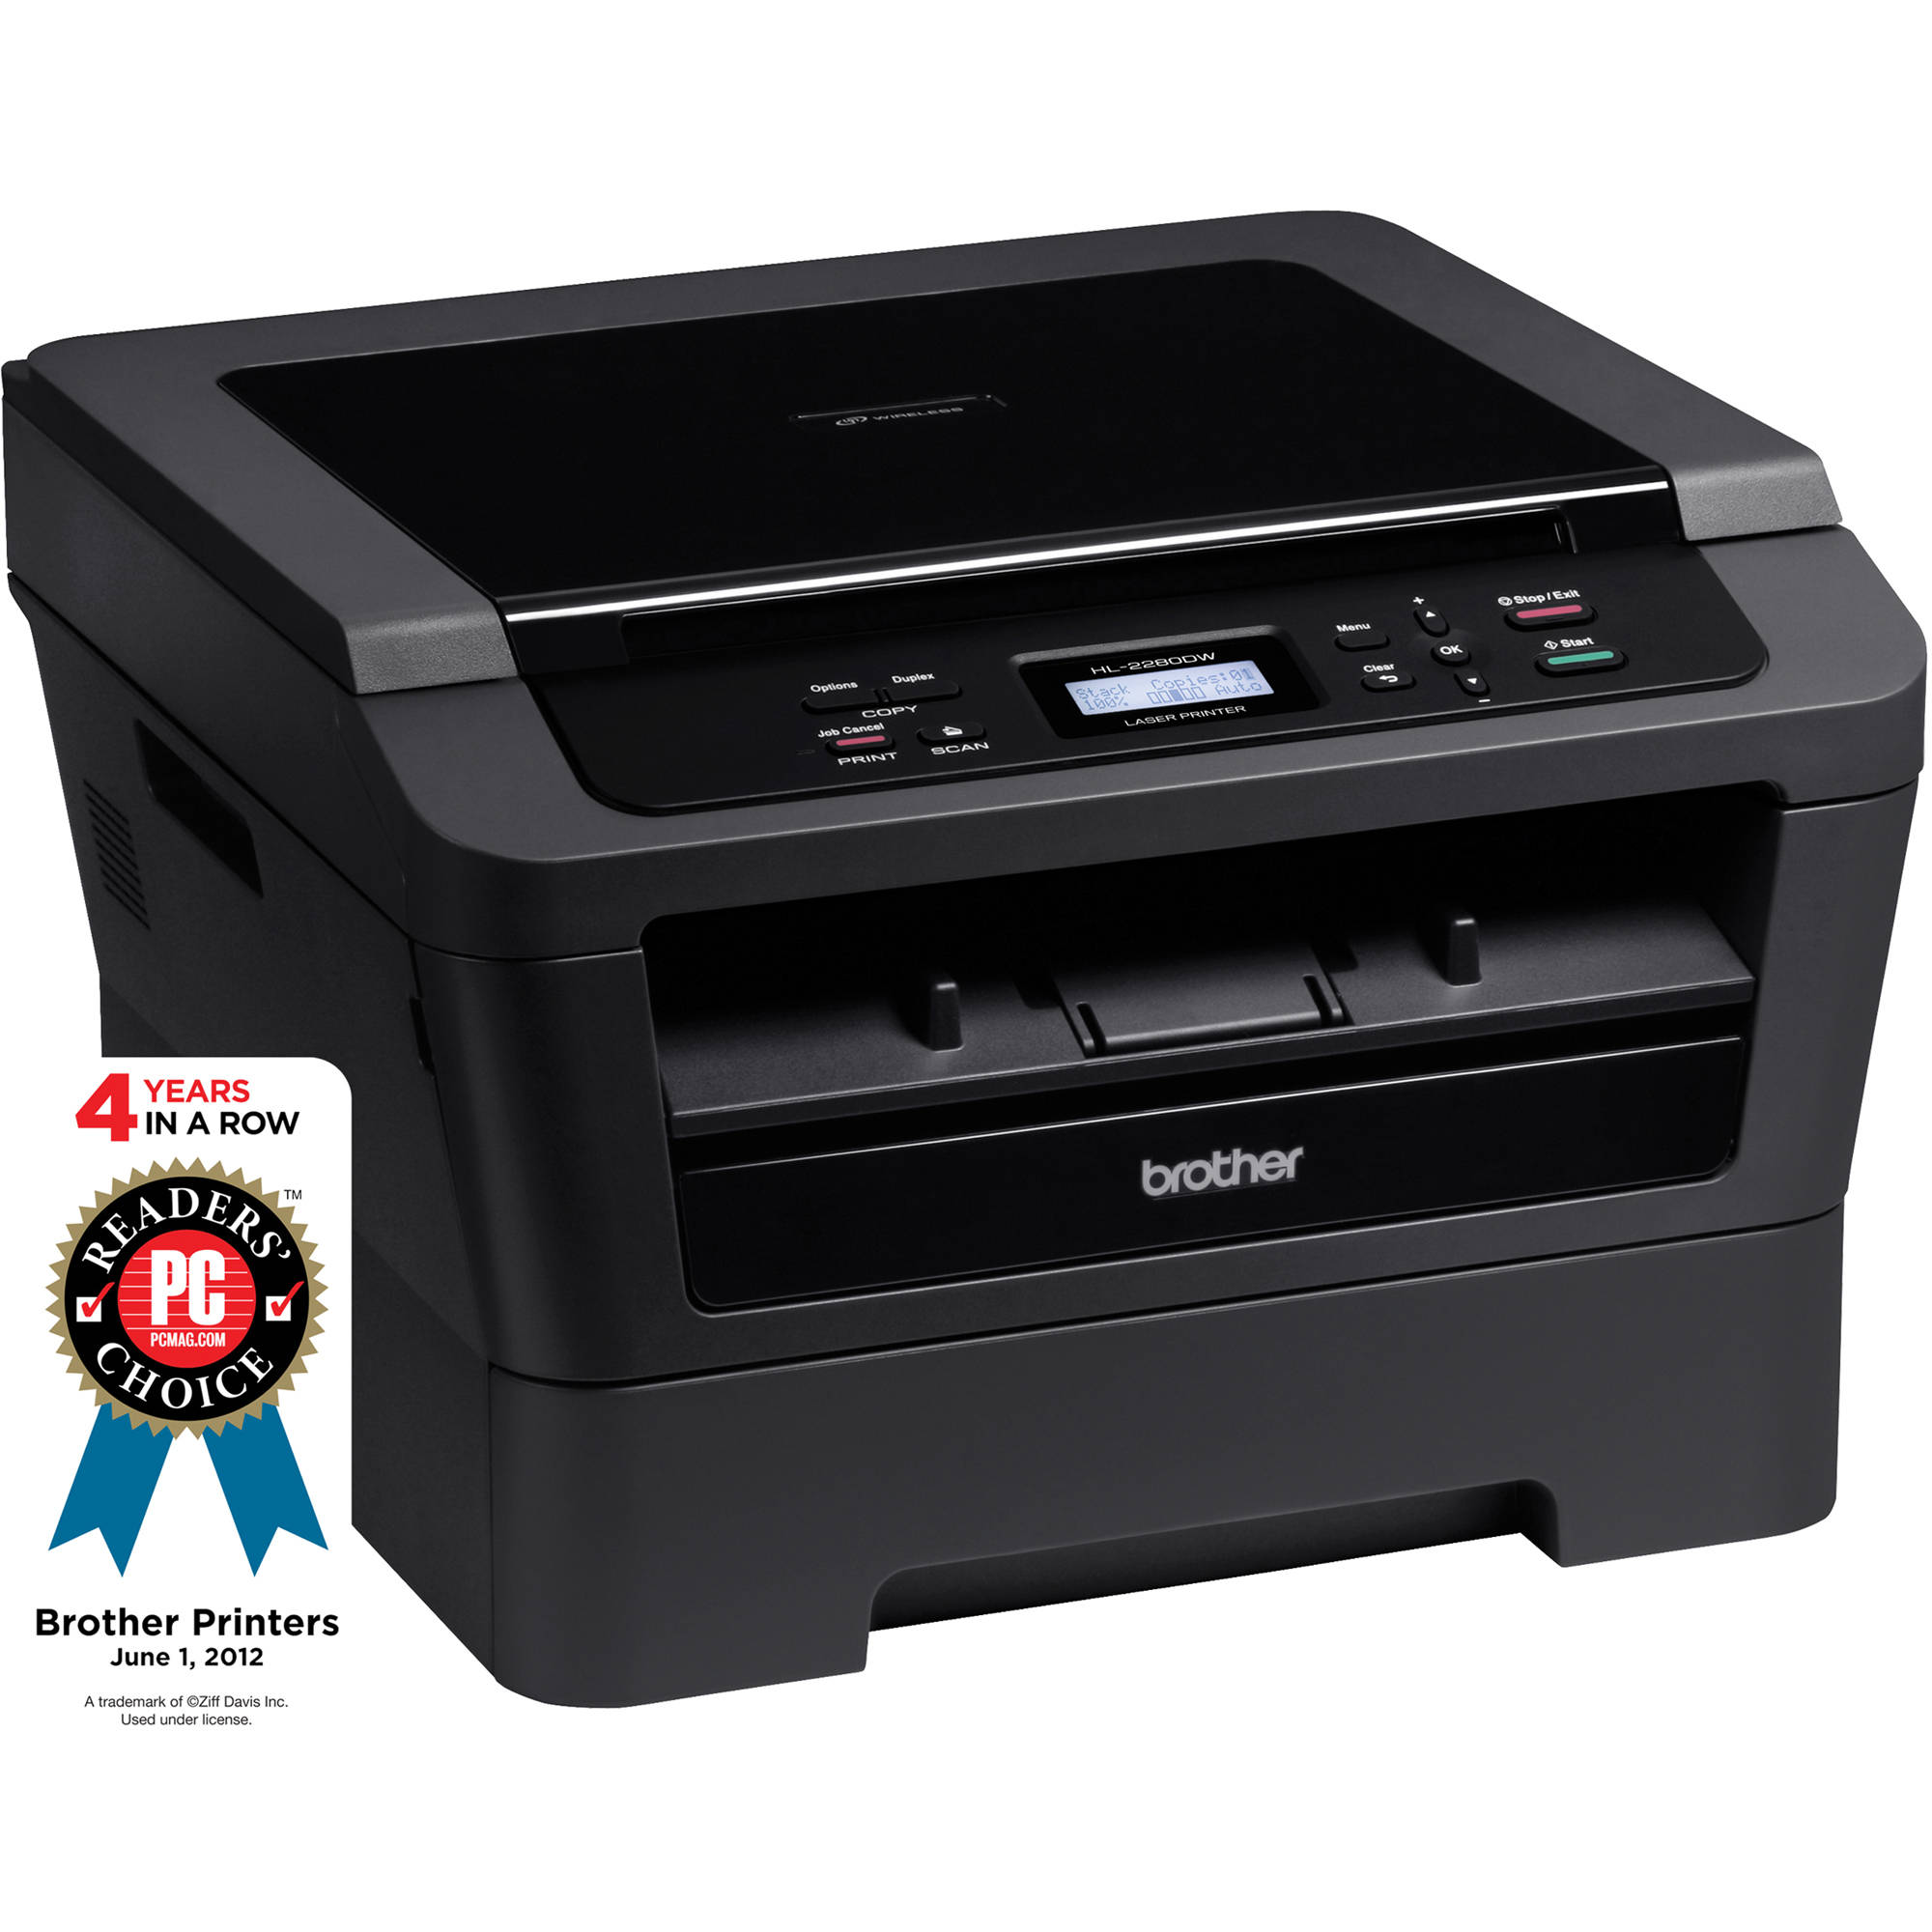 BROTHER LASER PRINTER HL-2280DW DRIVERS